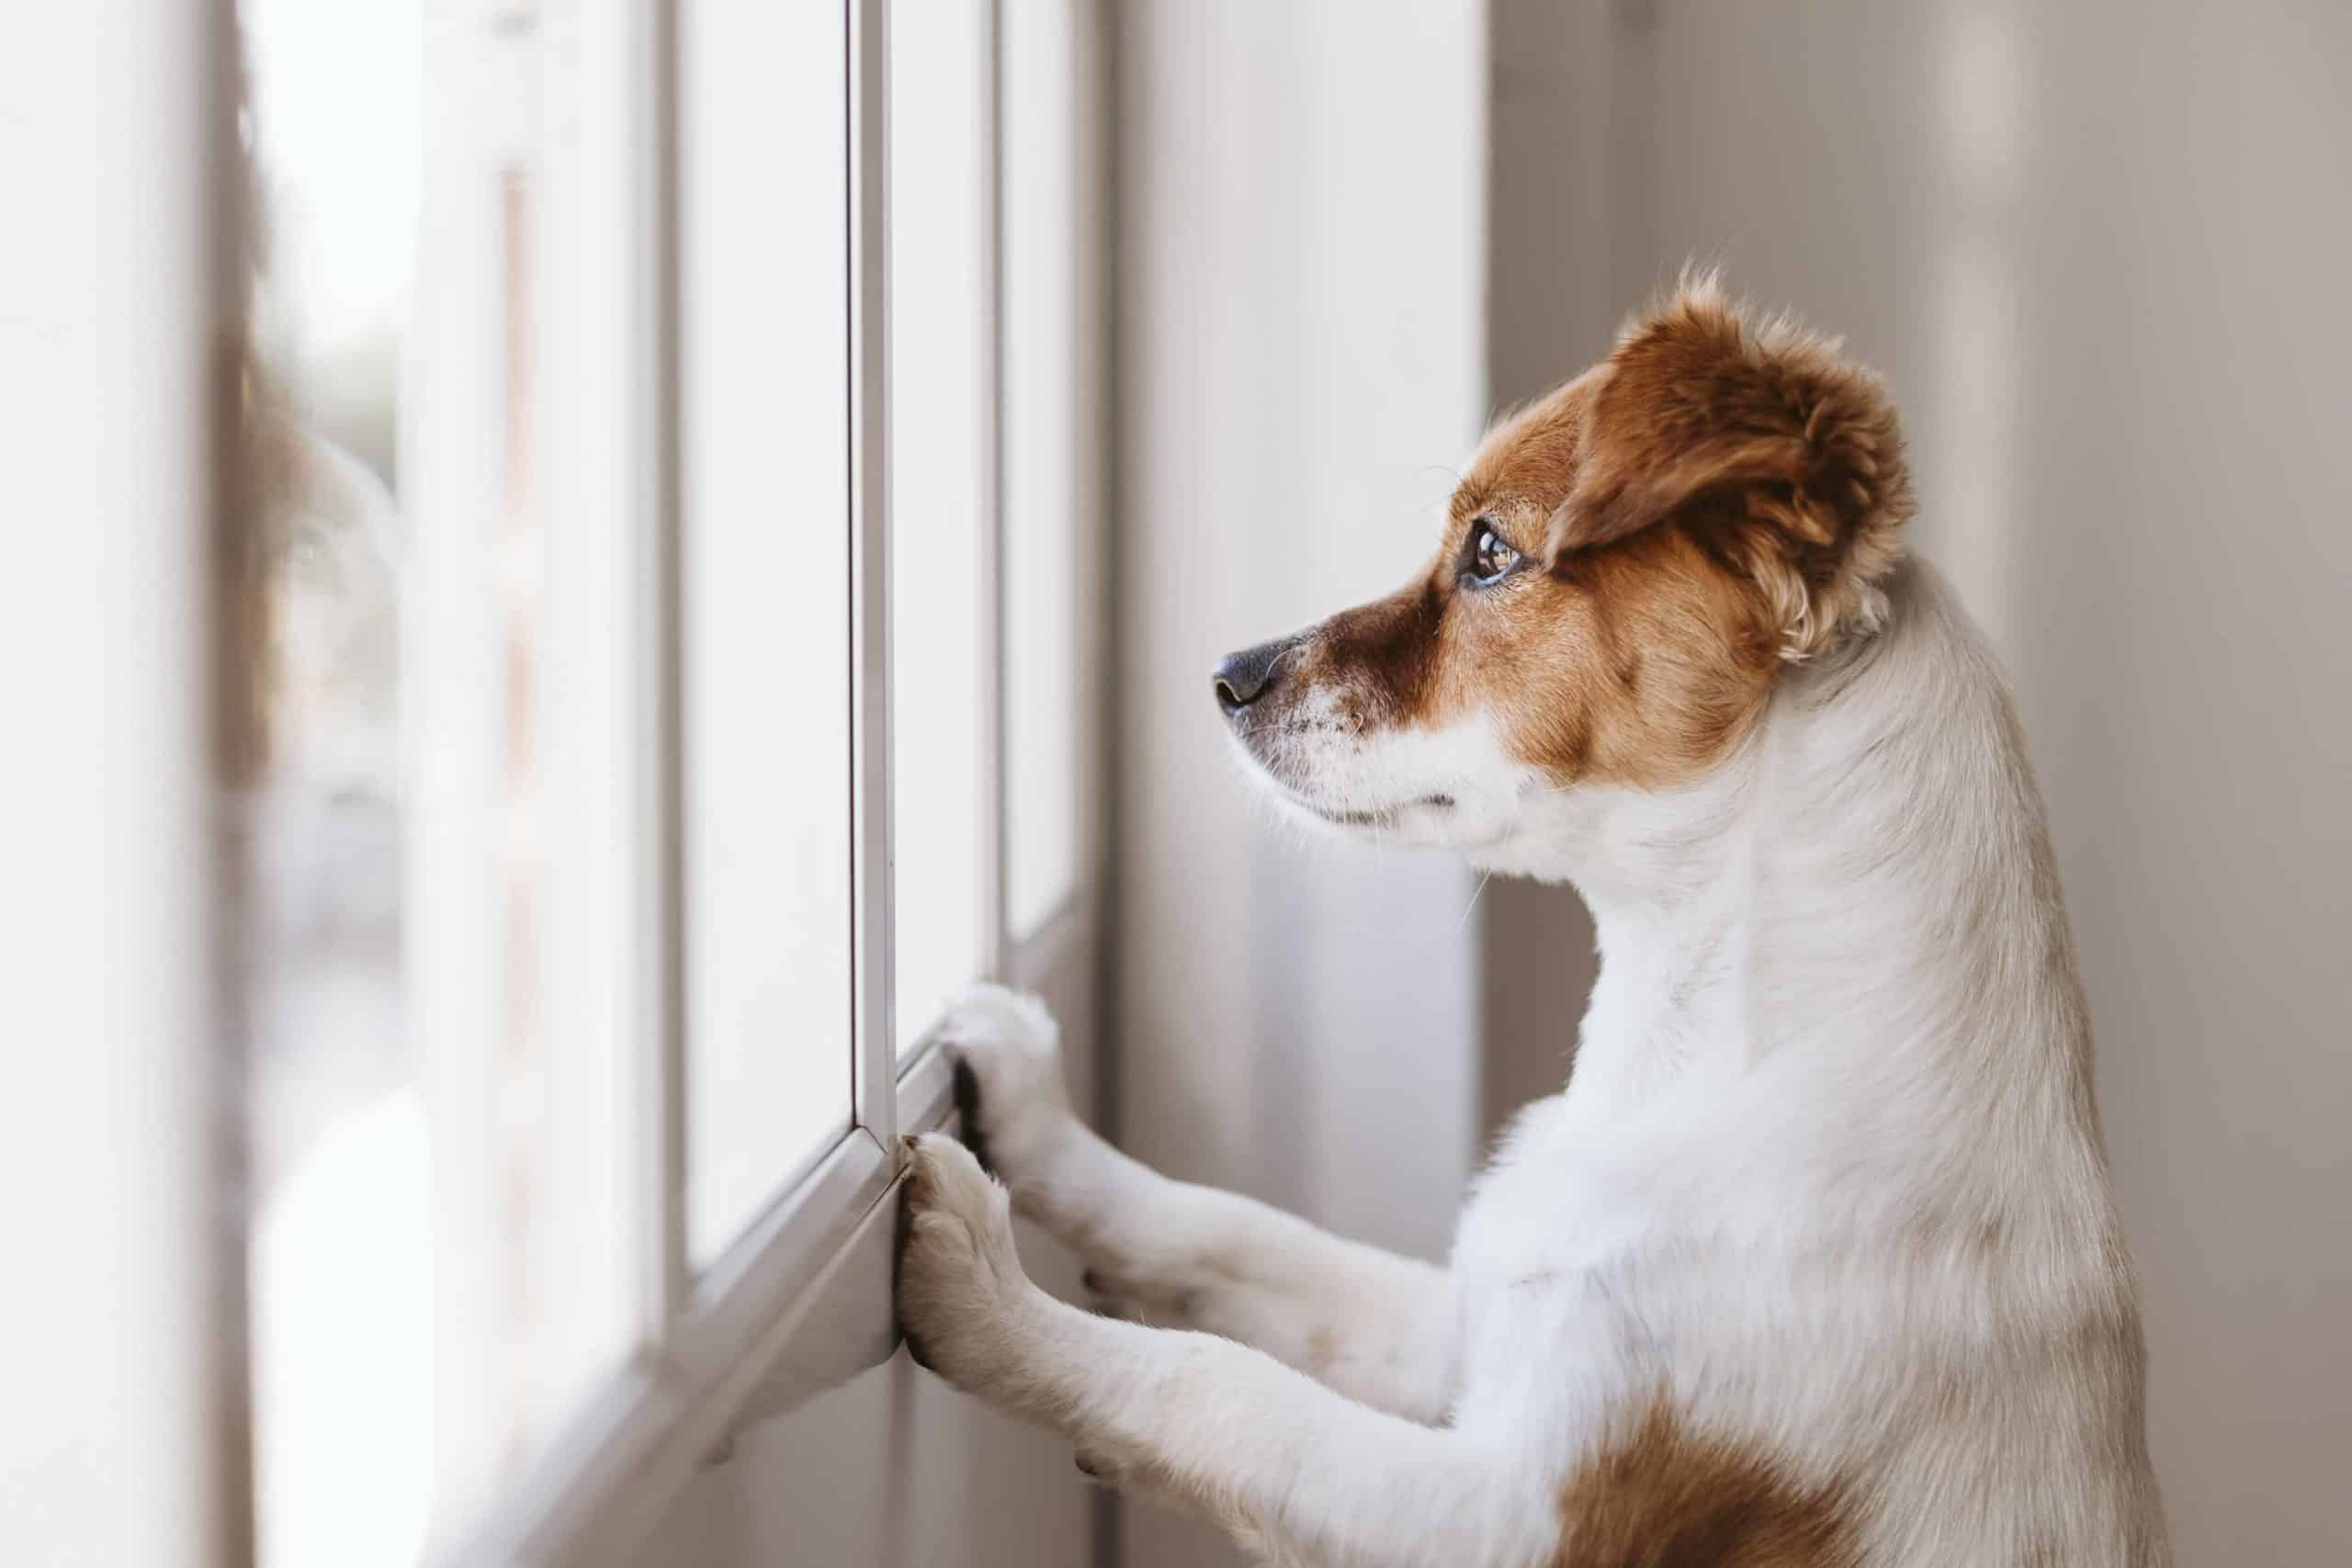 Jack Russell terrier waits by window while left home alone. Train your puppy to enjoy alone time using a confined space and enrichment. Discover what motivates your dog to make training easier.